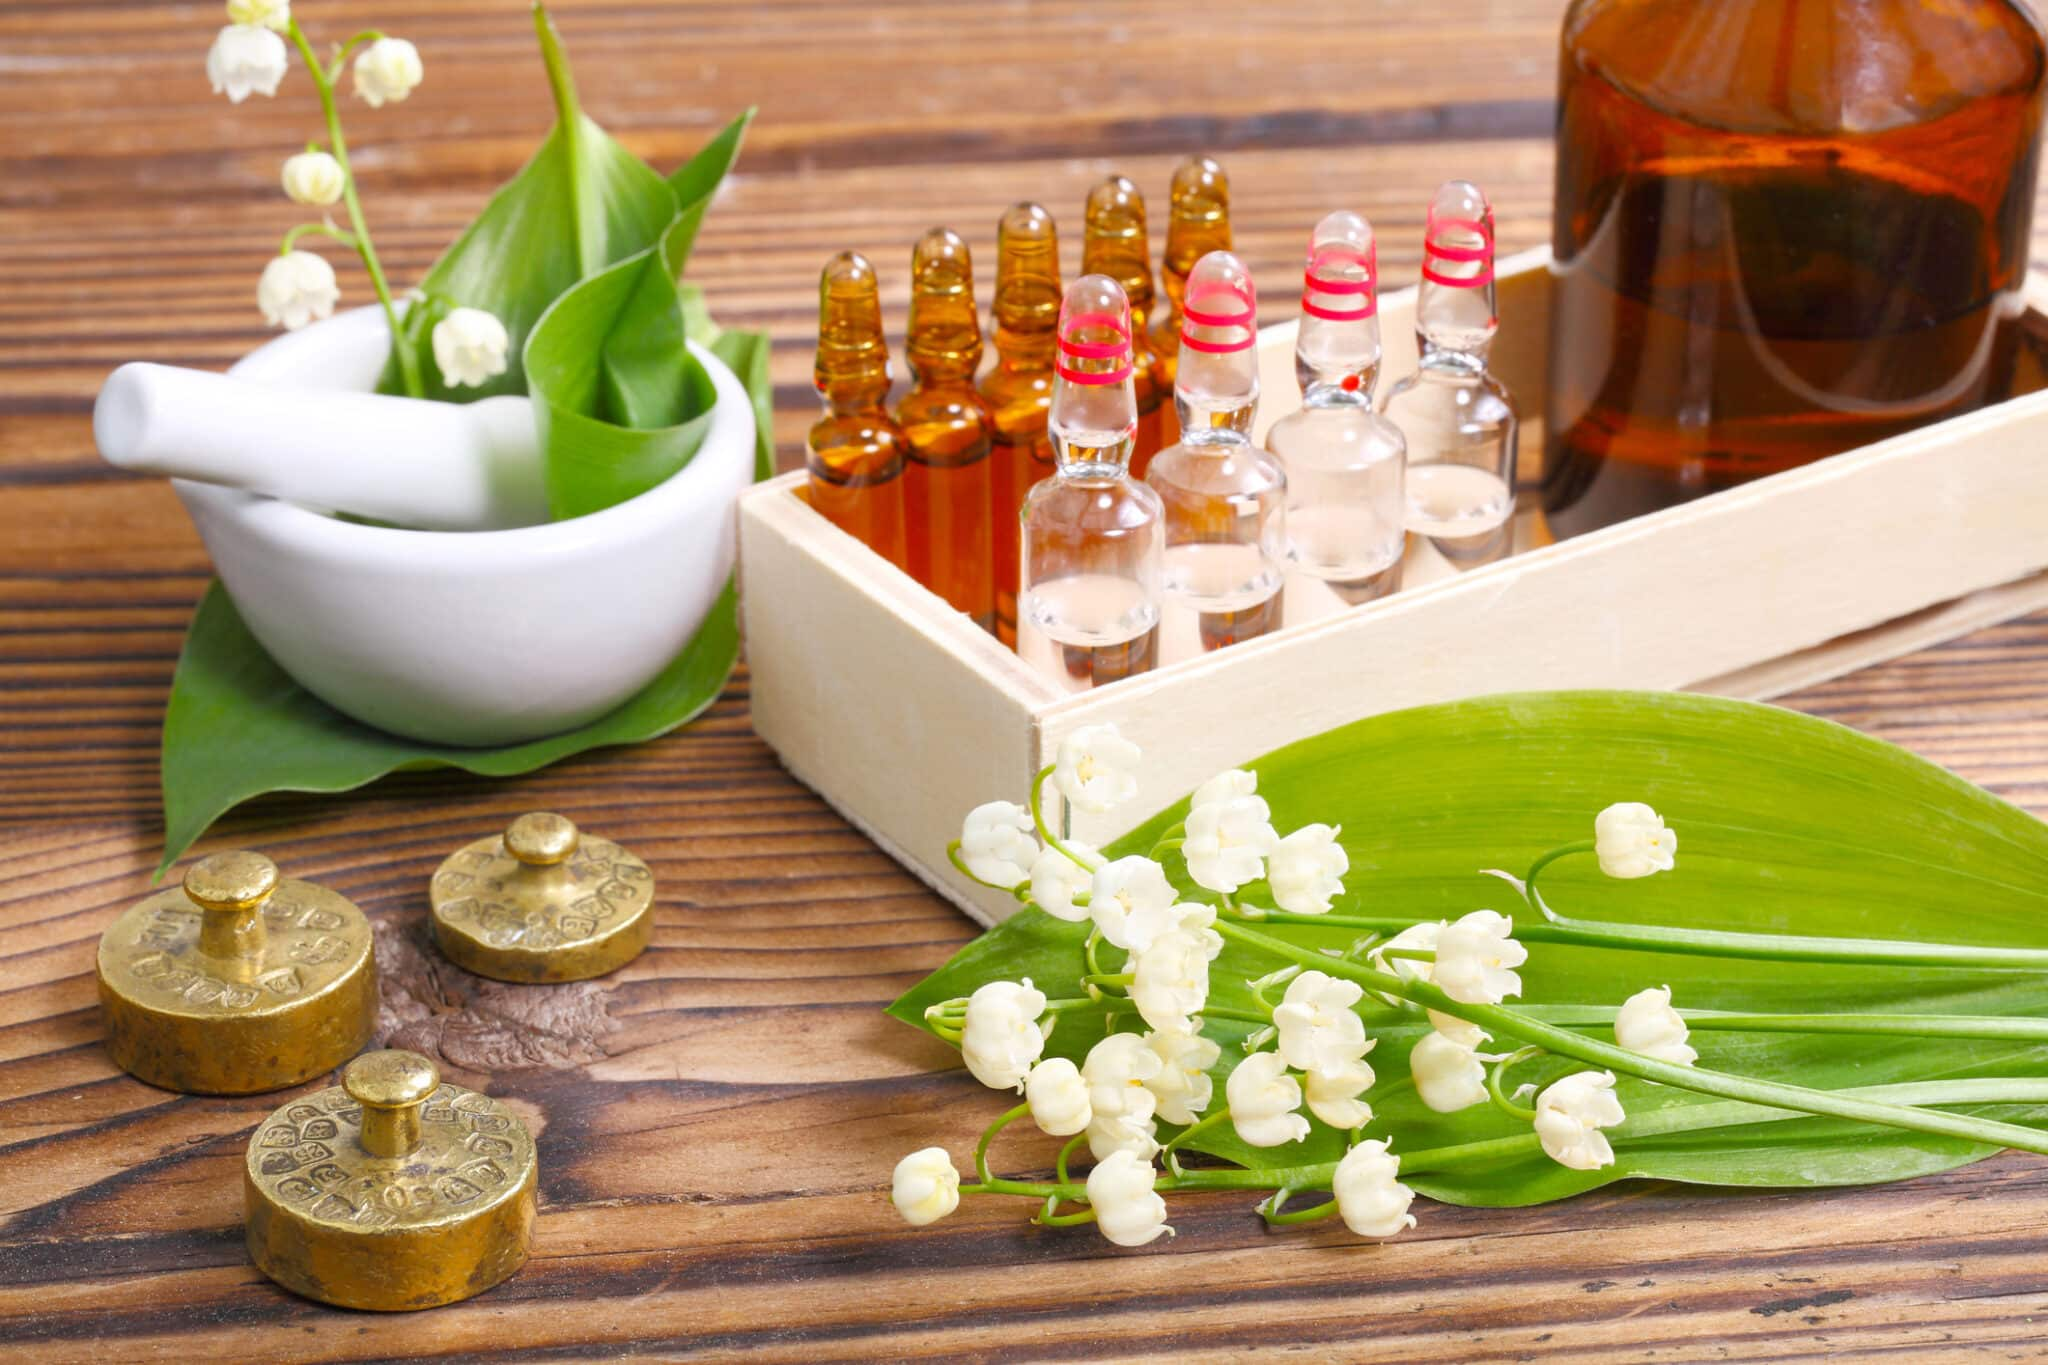 naturopathy-doctor-qlook